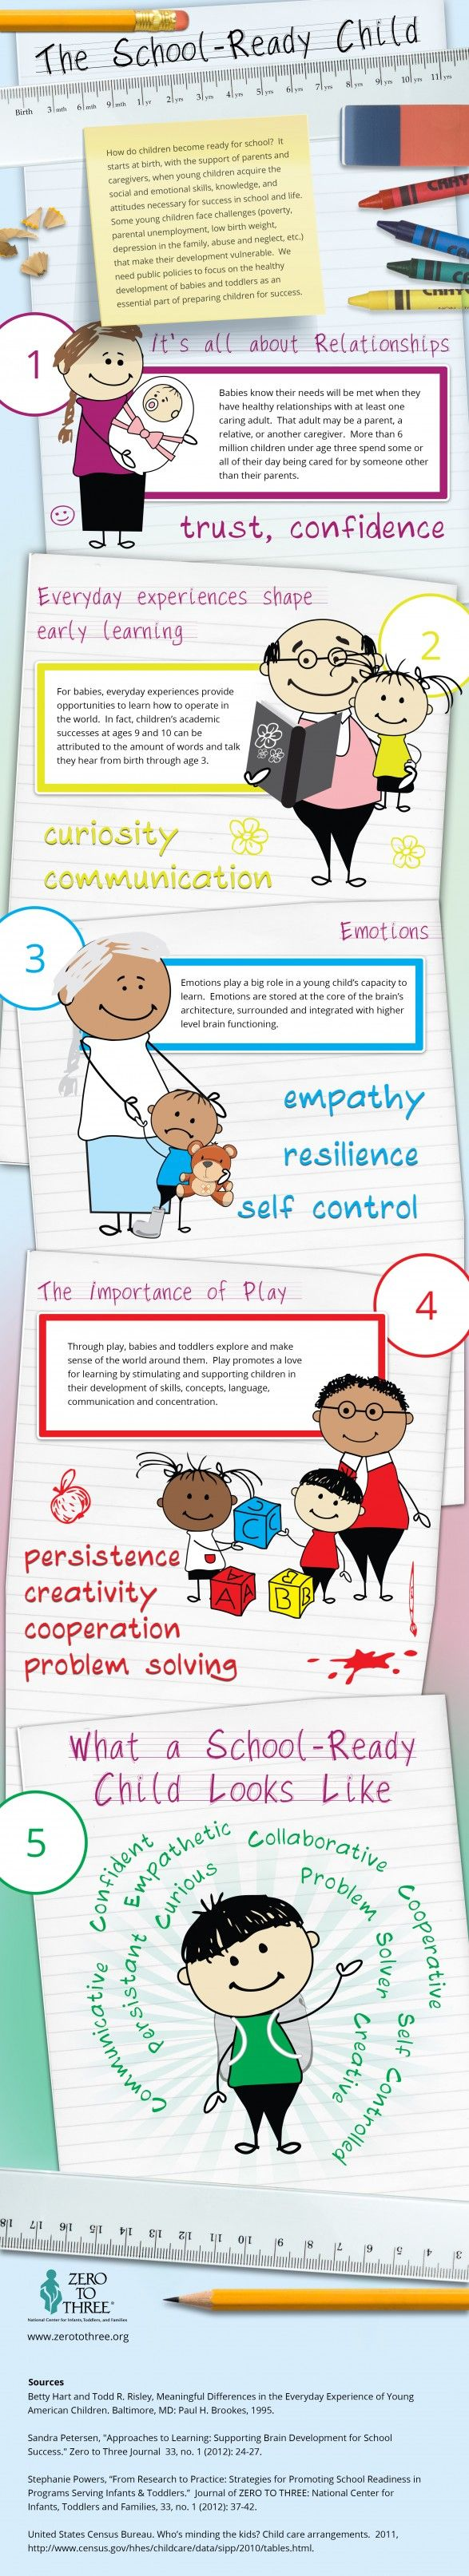 What Does The School Ready Child Look Like?  from Zero to Three